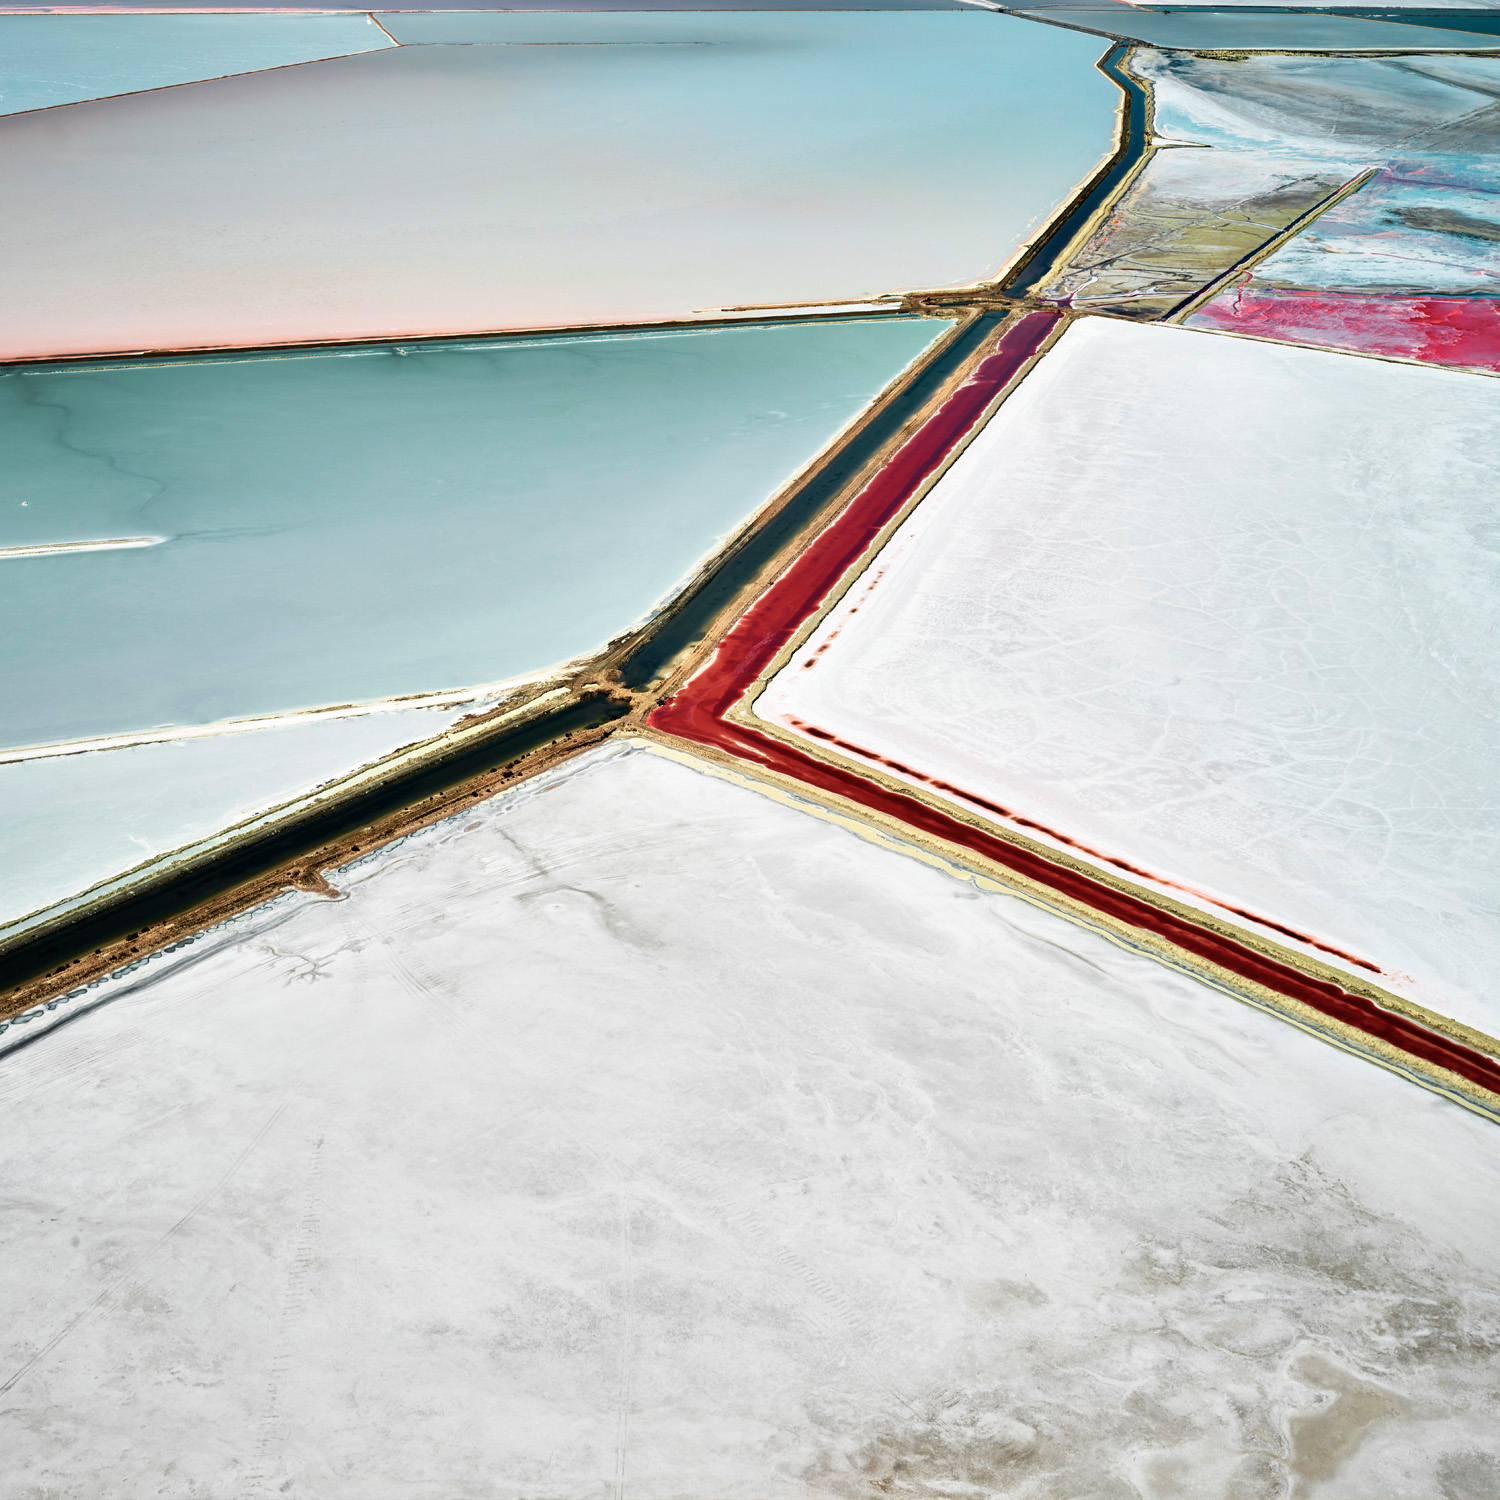 Saltern Study 17, Great Salt Lake, UT, 2015